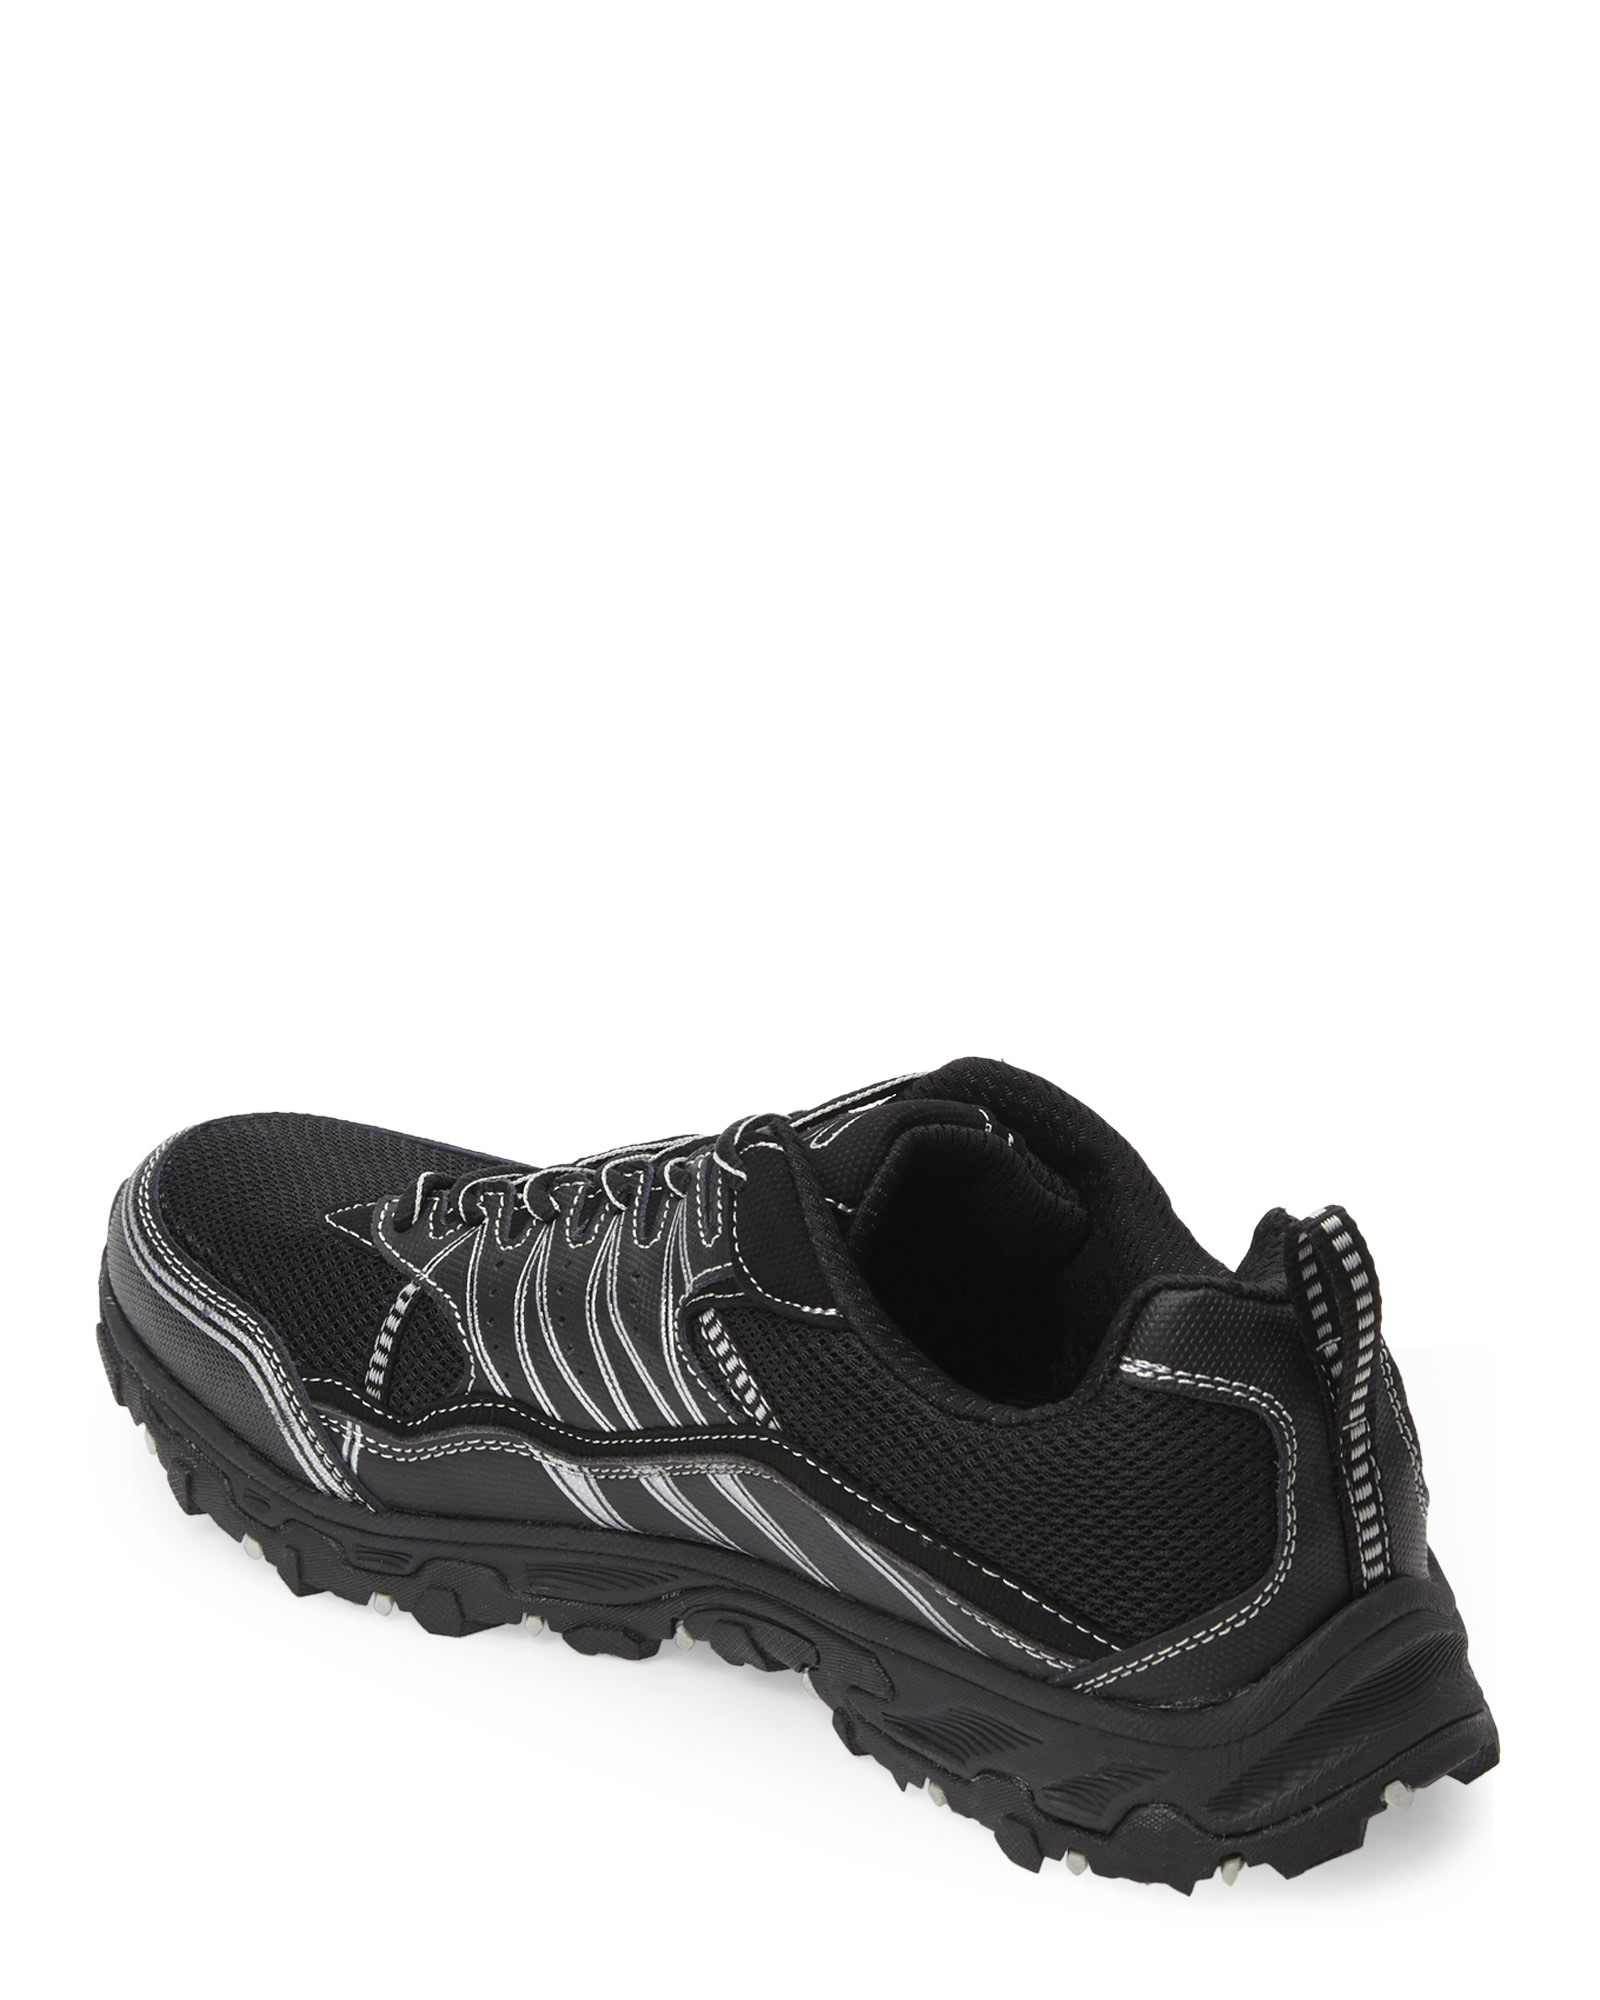 Black Lyst Fila Terrain All Sneakers Running Tractile Silver In Amp; bfY67Igvy